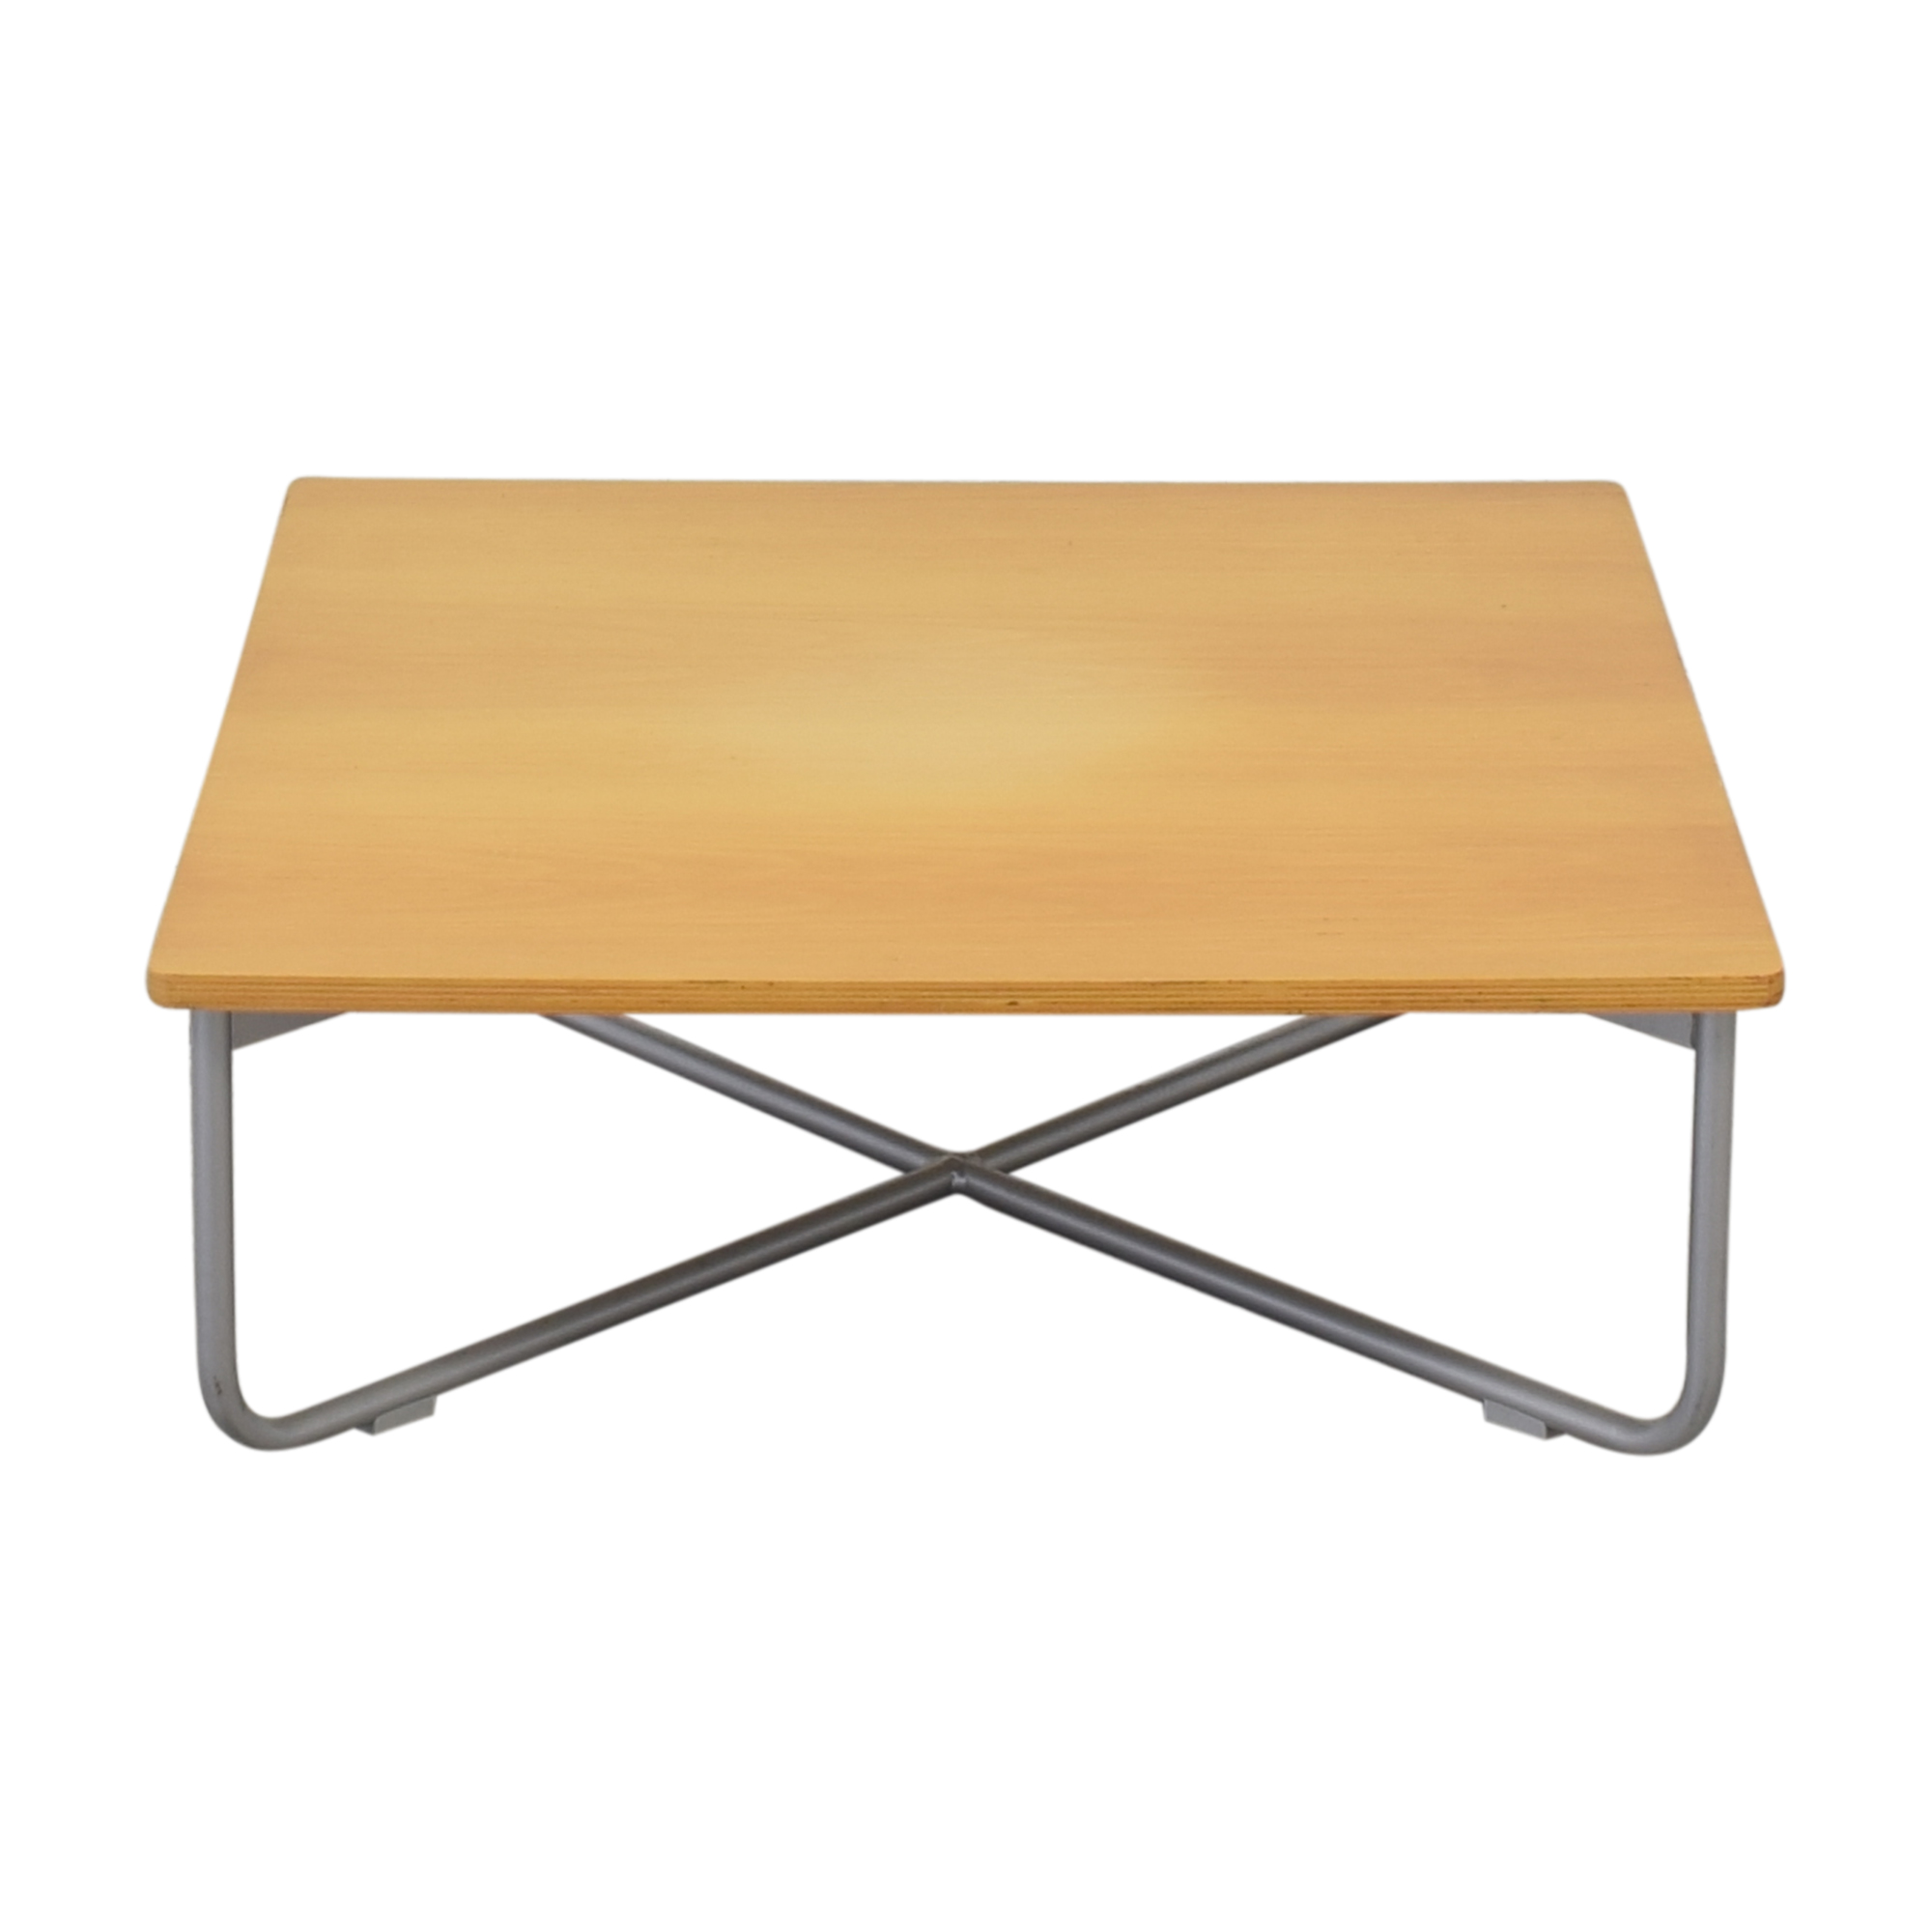 Swedese Swedese Havanna Small Table Tables